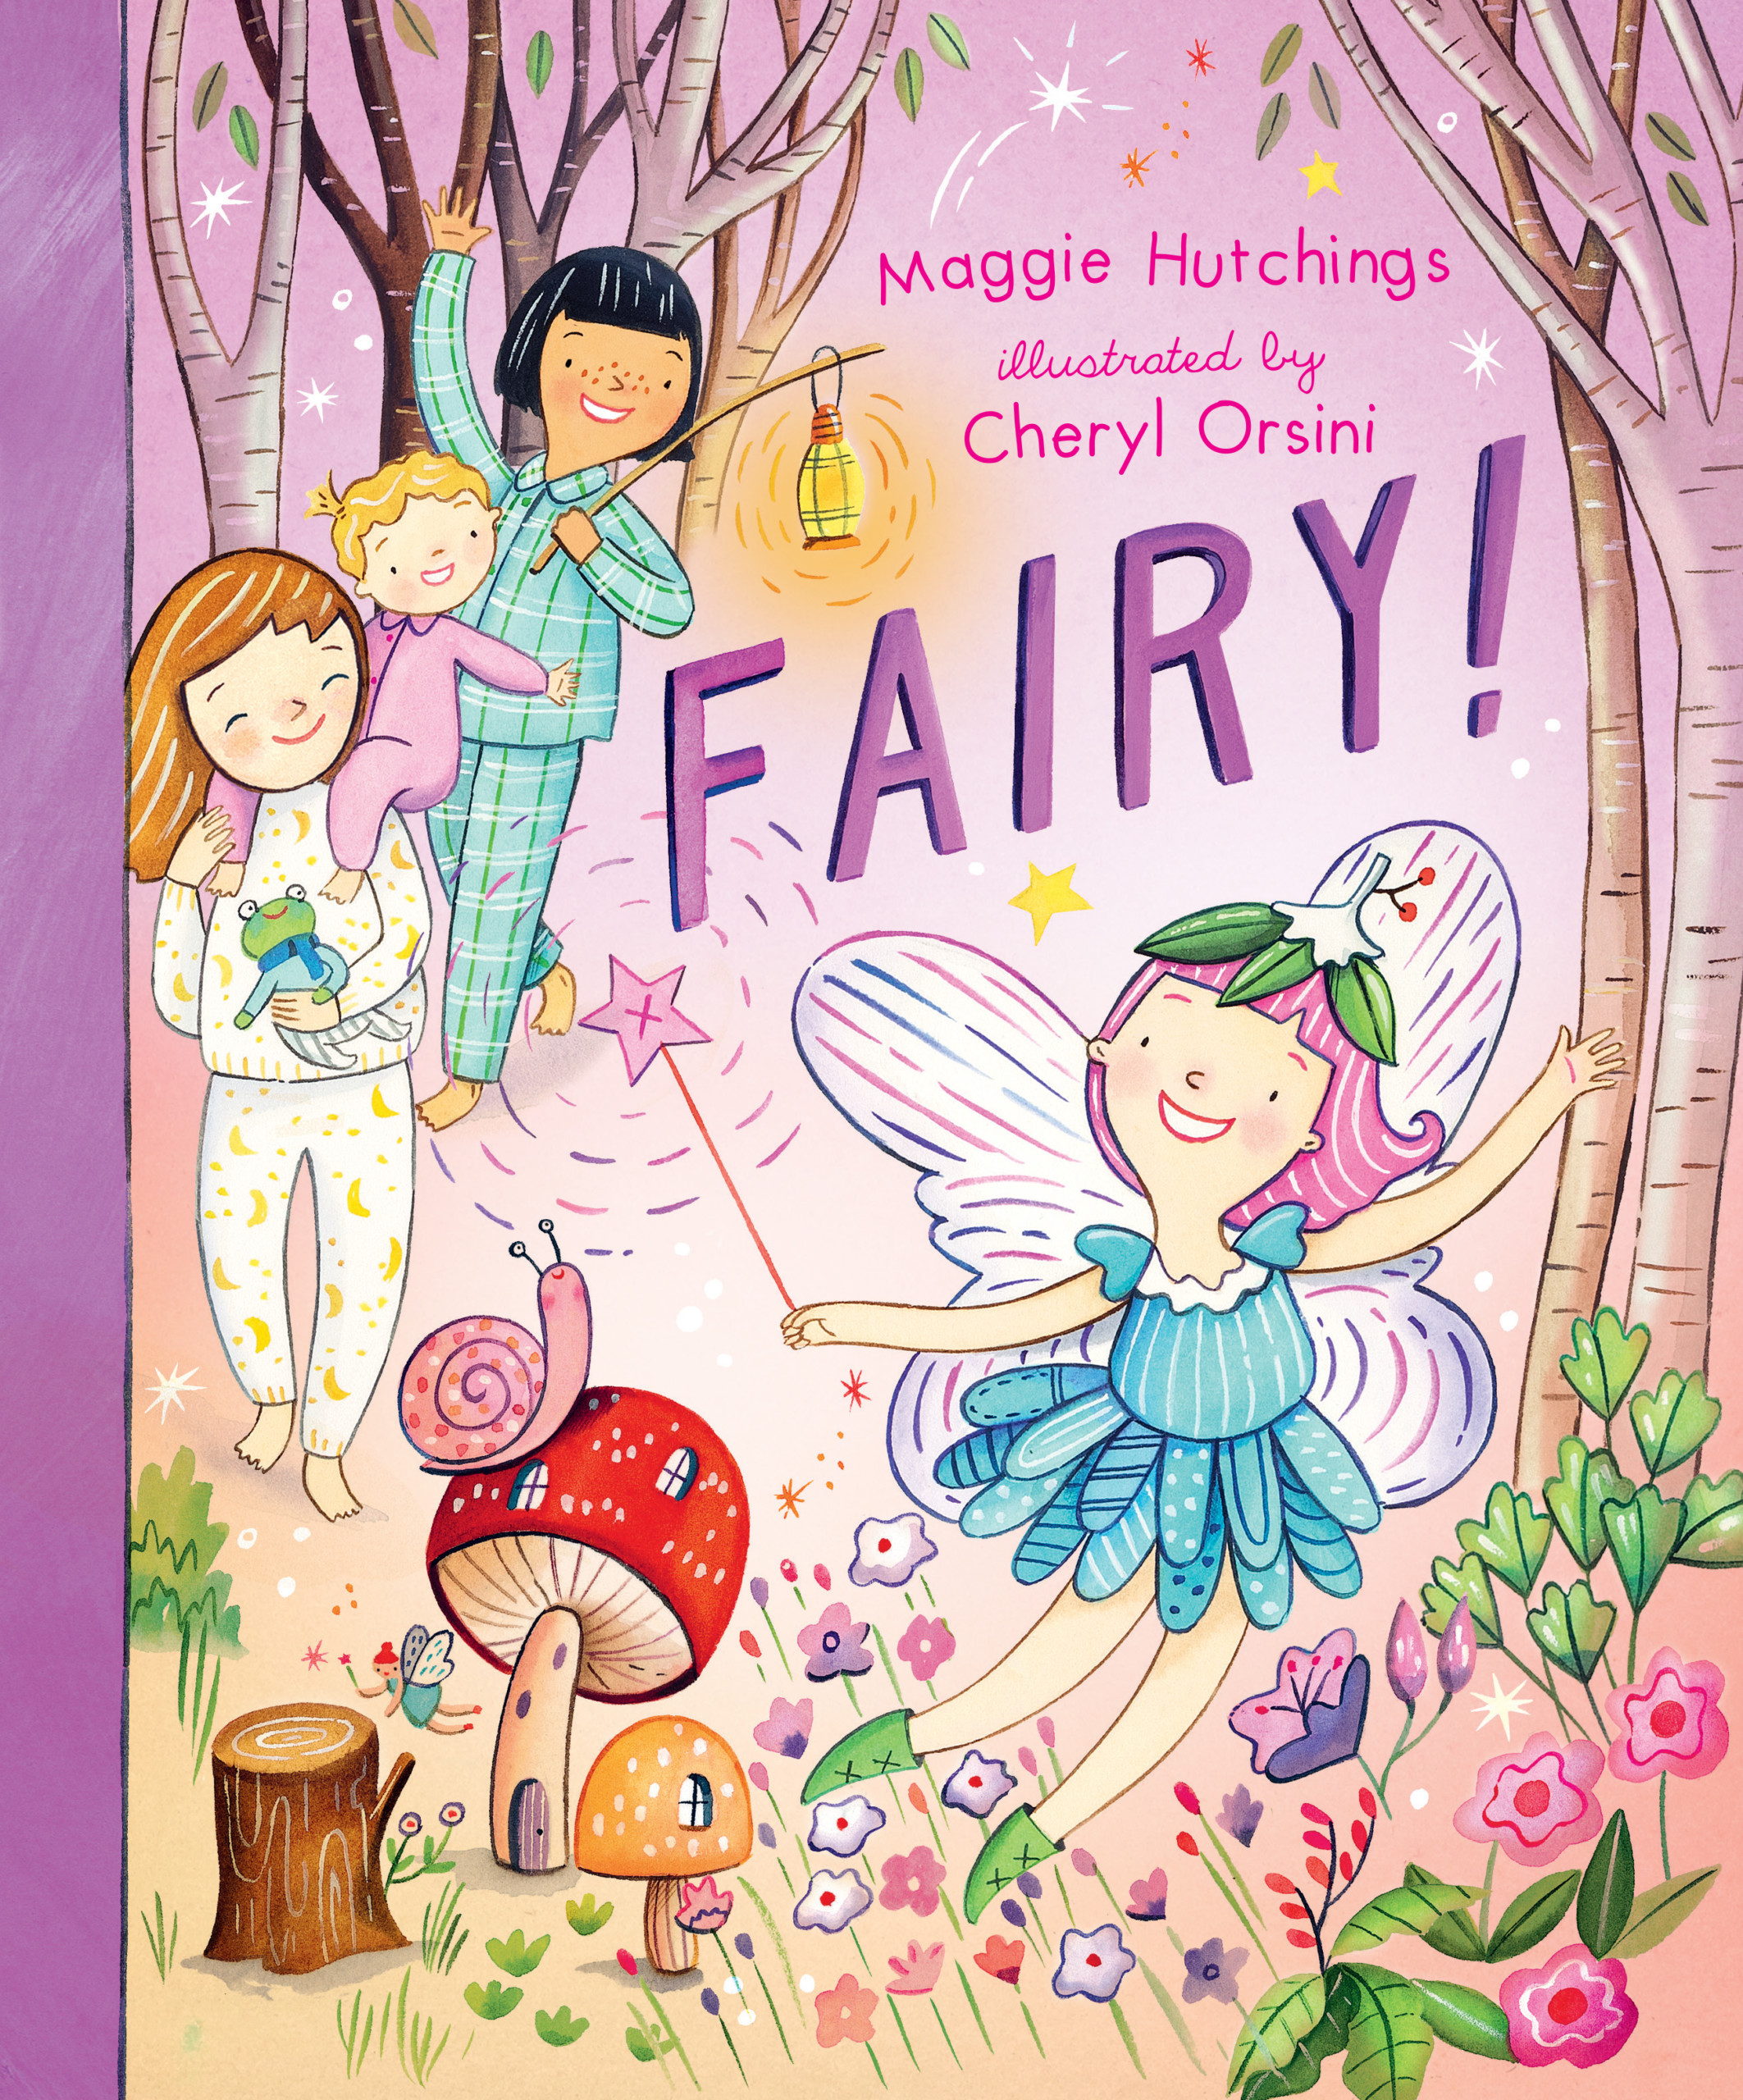 Fairy! by Maggie Hutchings, illustrated by Cheryl Orsini